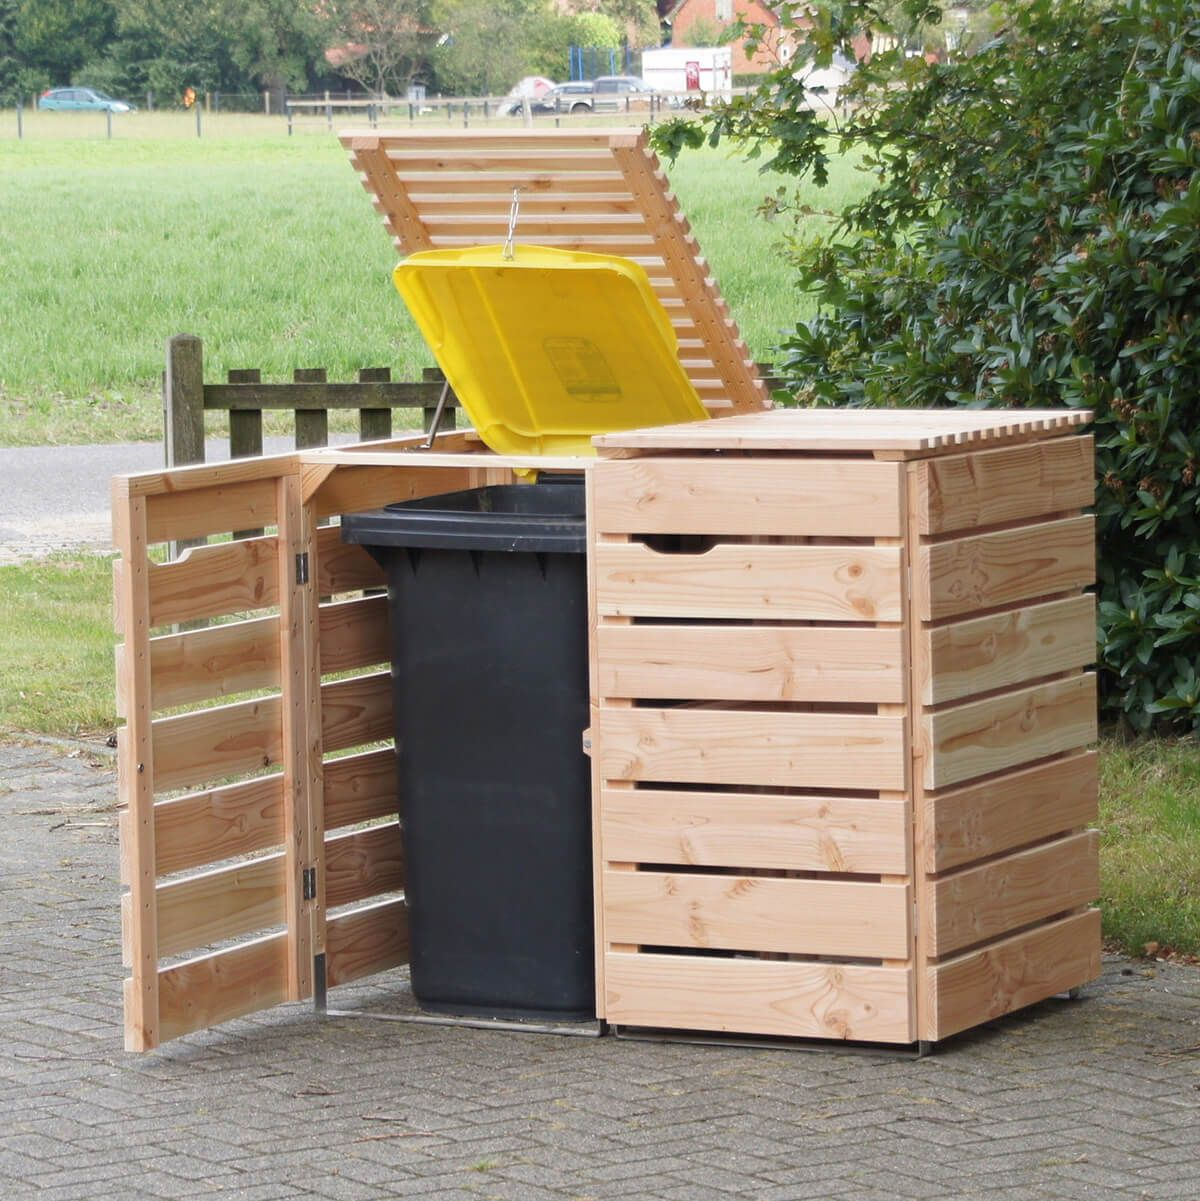 Gentil Storage To Keep Your Garbage Undercover